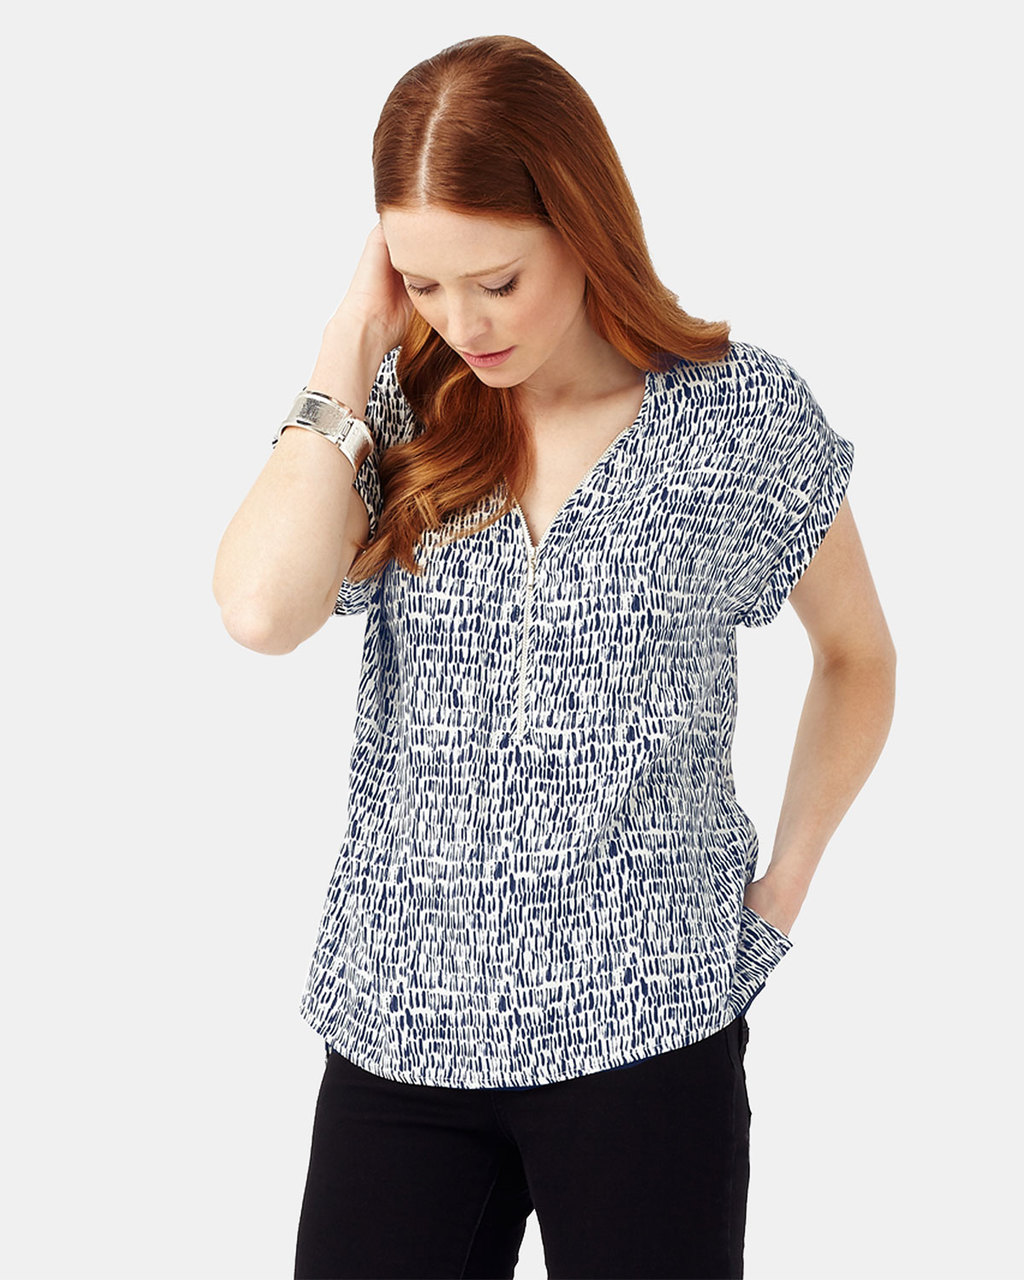 Denver Print Remi Blouse - neckline: v-neck; style: blouse; secondary colour: white; predominant colour: denim; occasions: casual; length: standard; fibres: viscose/rayon - 100%; fit: body skimming; sleeve length: short sleeve; sleeve style: standard; pattern type: fabric; pattern: patterned/print; texture group: other - light to midweight; multicoloured: multicoloured; season: s/s 2016